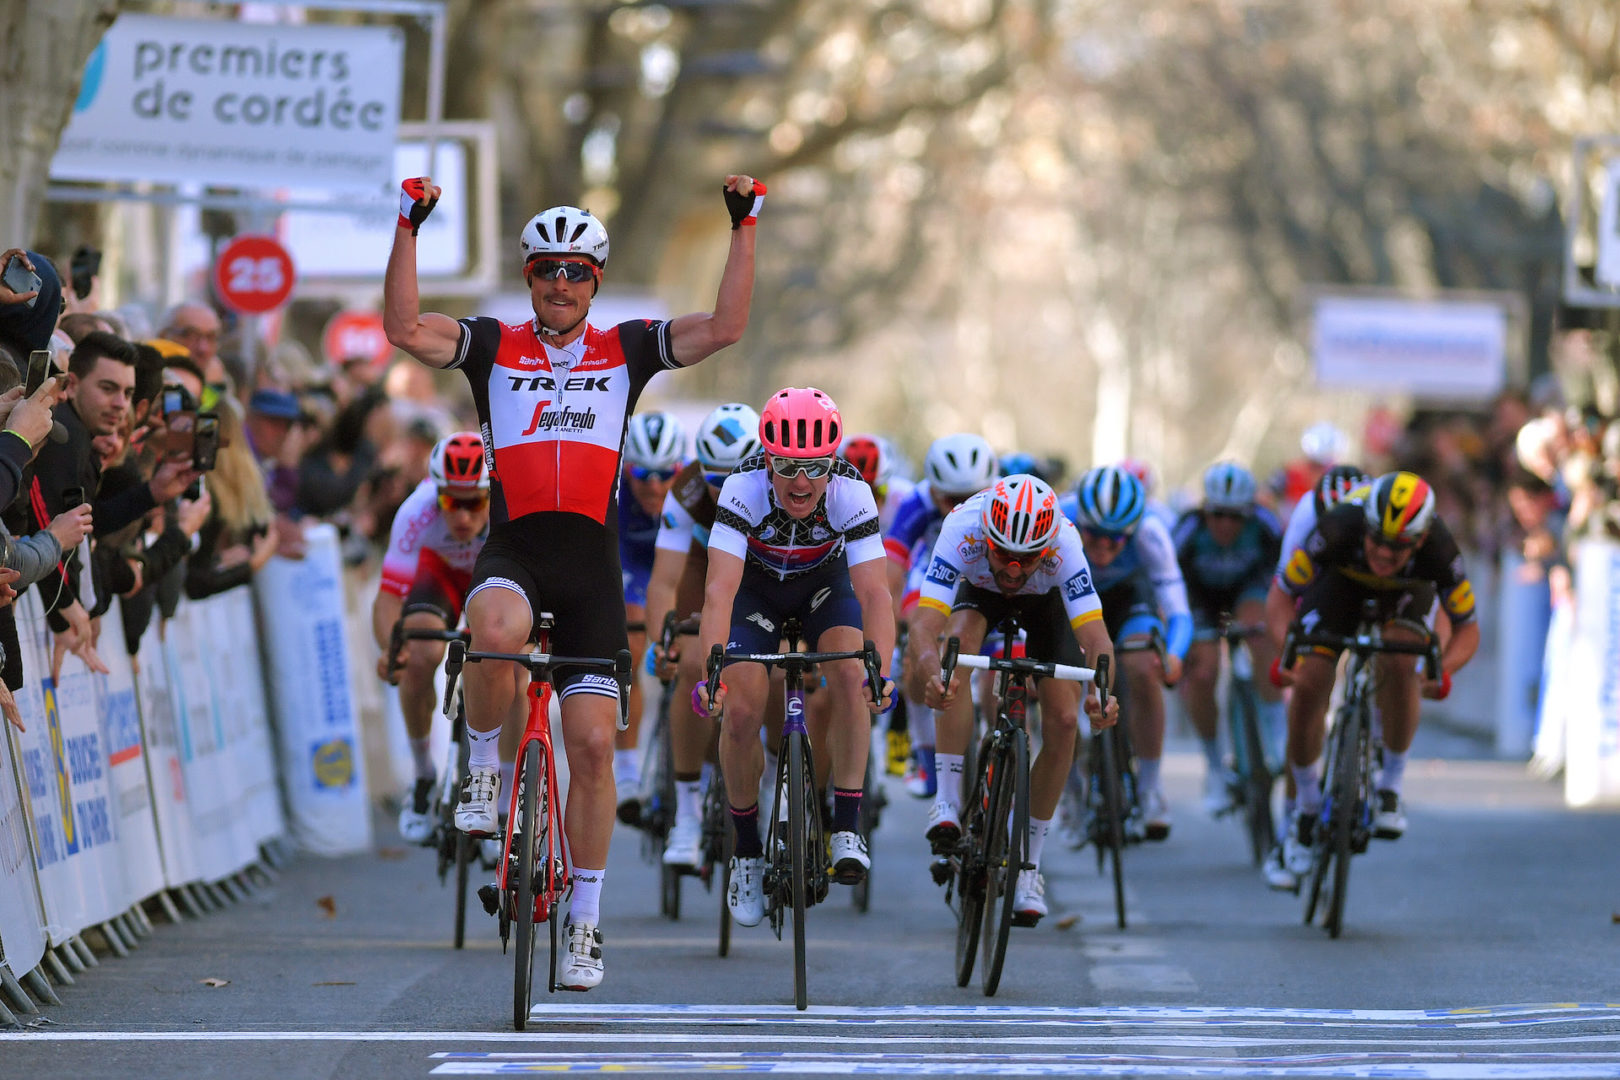 AIX-EN-PROVENCE, FRANCE - FEBRUARY 17: Arrival / John Degenkolb of Germany and Team Trek-Segafredo / Celebration / Simon Clarke of Australia and Team EF Education First White Sprint Jersey / Anthony Maldonado of France and Team St Michel - Auber 93 / during the 4th Tour de La Provence 2019, Stage 4 a 173,3km race from Avignon to Aix en Provence 188m / TDLP / @laprovence / on February 17, 2019 in Aix-en-Provence, France. (Photo by Luc Claessen/Getty Images)